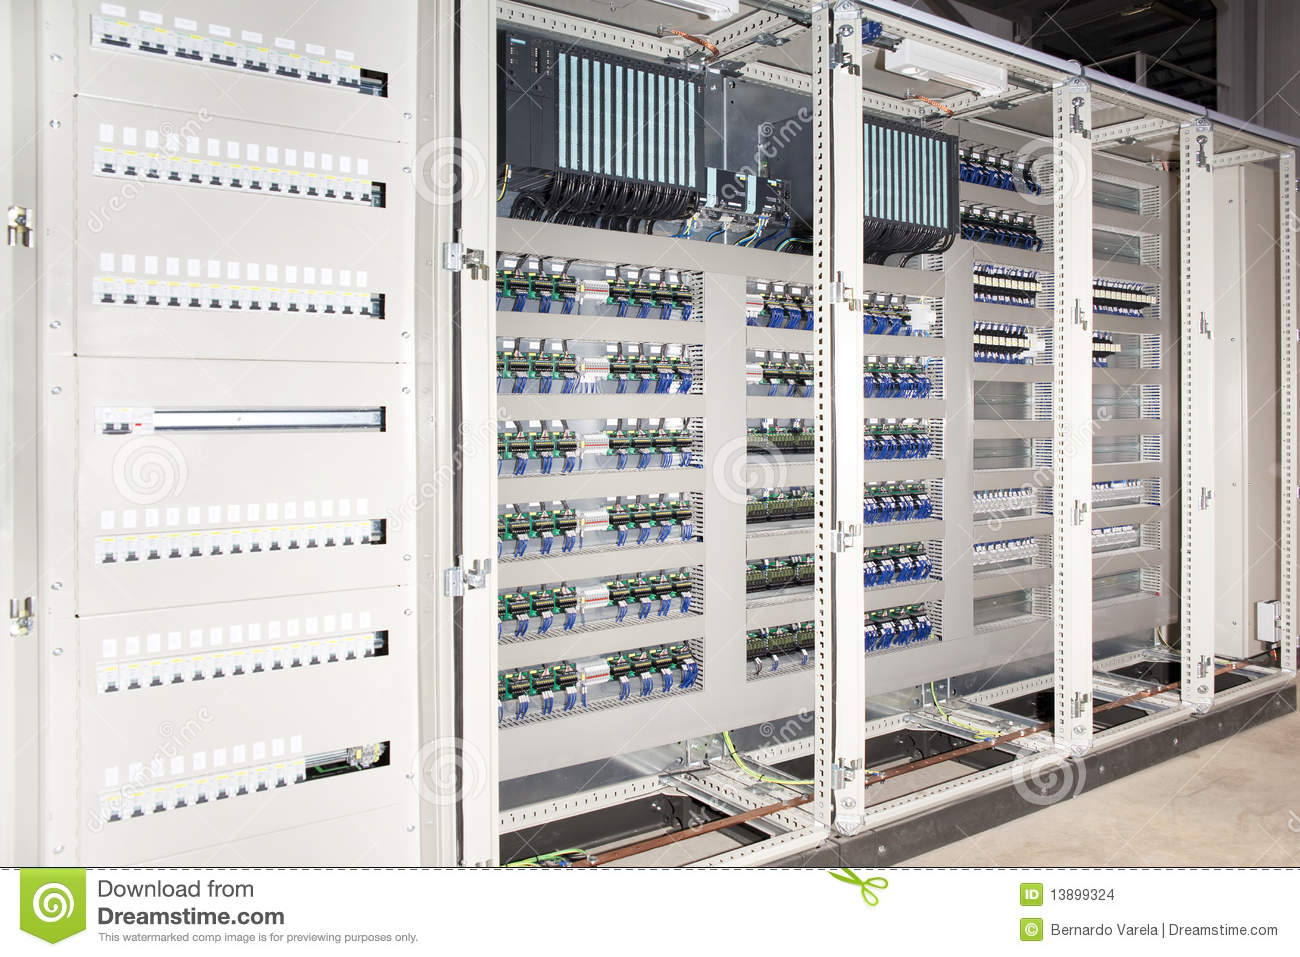 Plc Automated System Electrical Panel Board Stock Photo - Image of ...